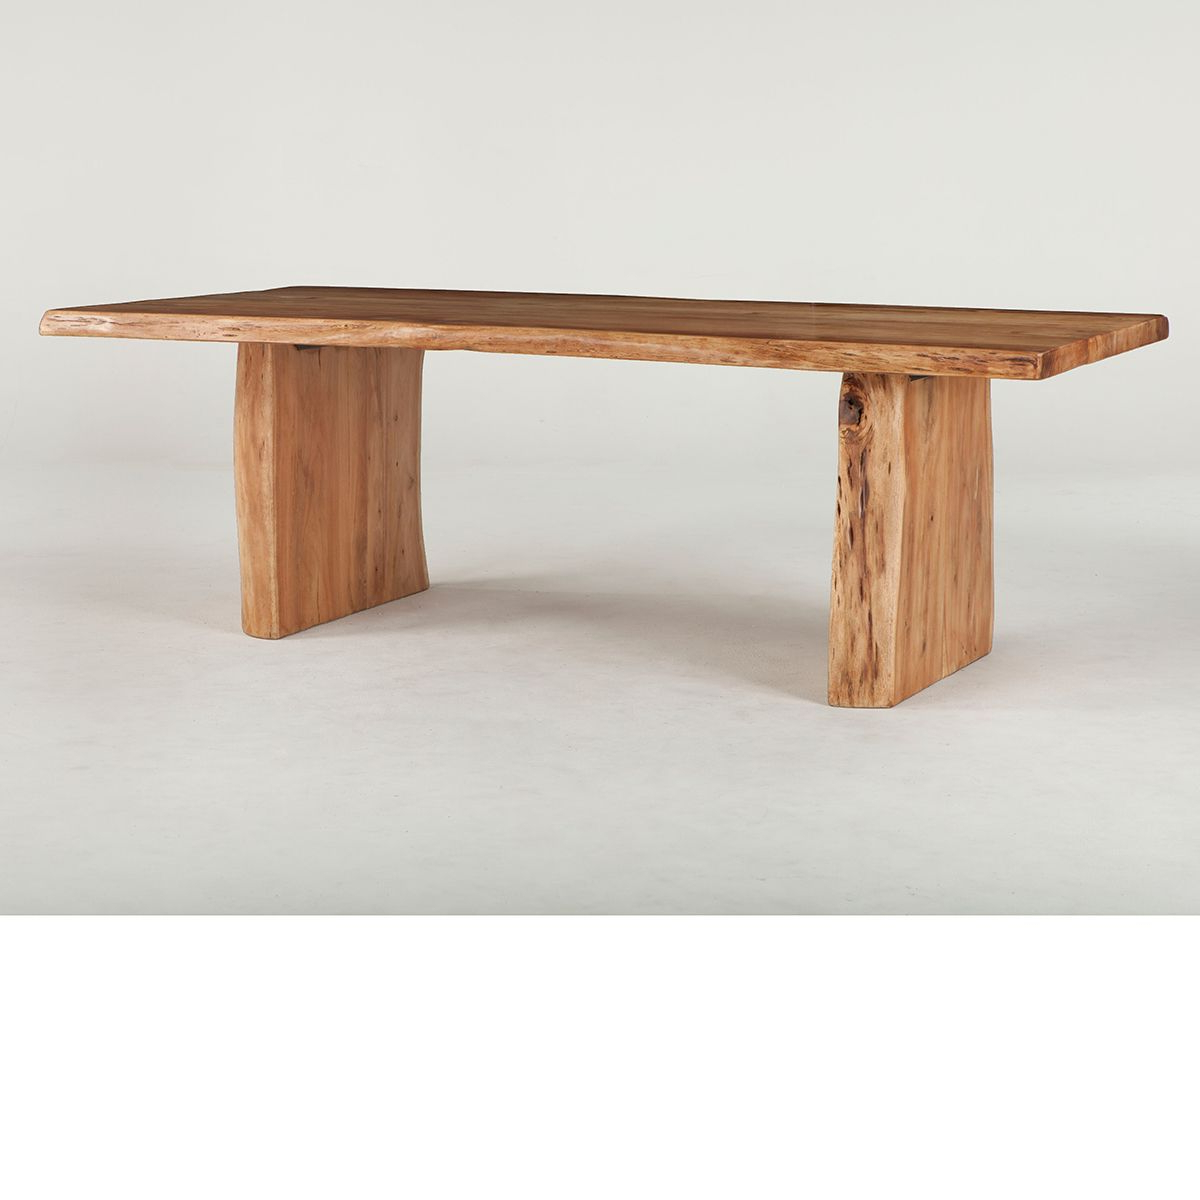 Most Recently Released Acacia Dining Tables With Black Rocket Legs Throughout The Dump Furniture – Live Edge Dining Table (View 17 of 30)